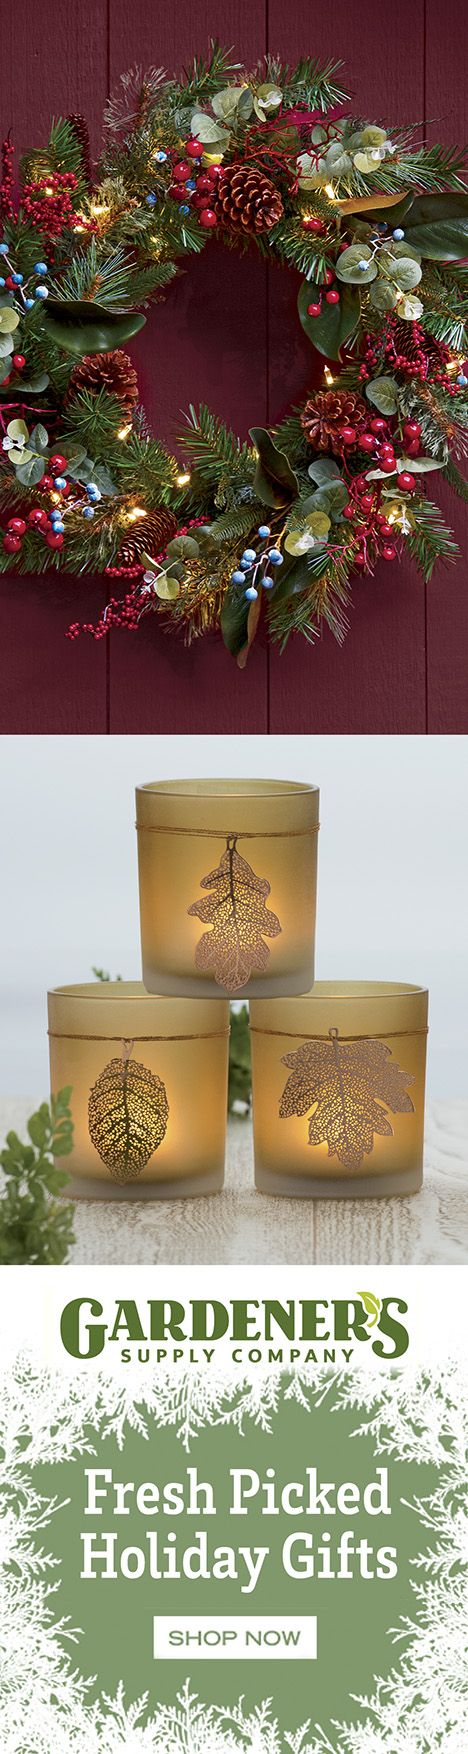 Make your holidays bright, inside and out. Shop fresh picked gifts for the home and for gardeners!